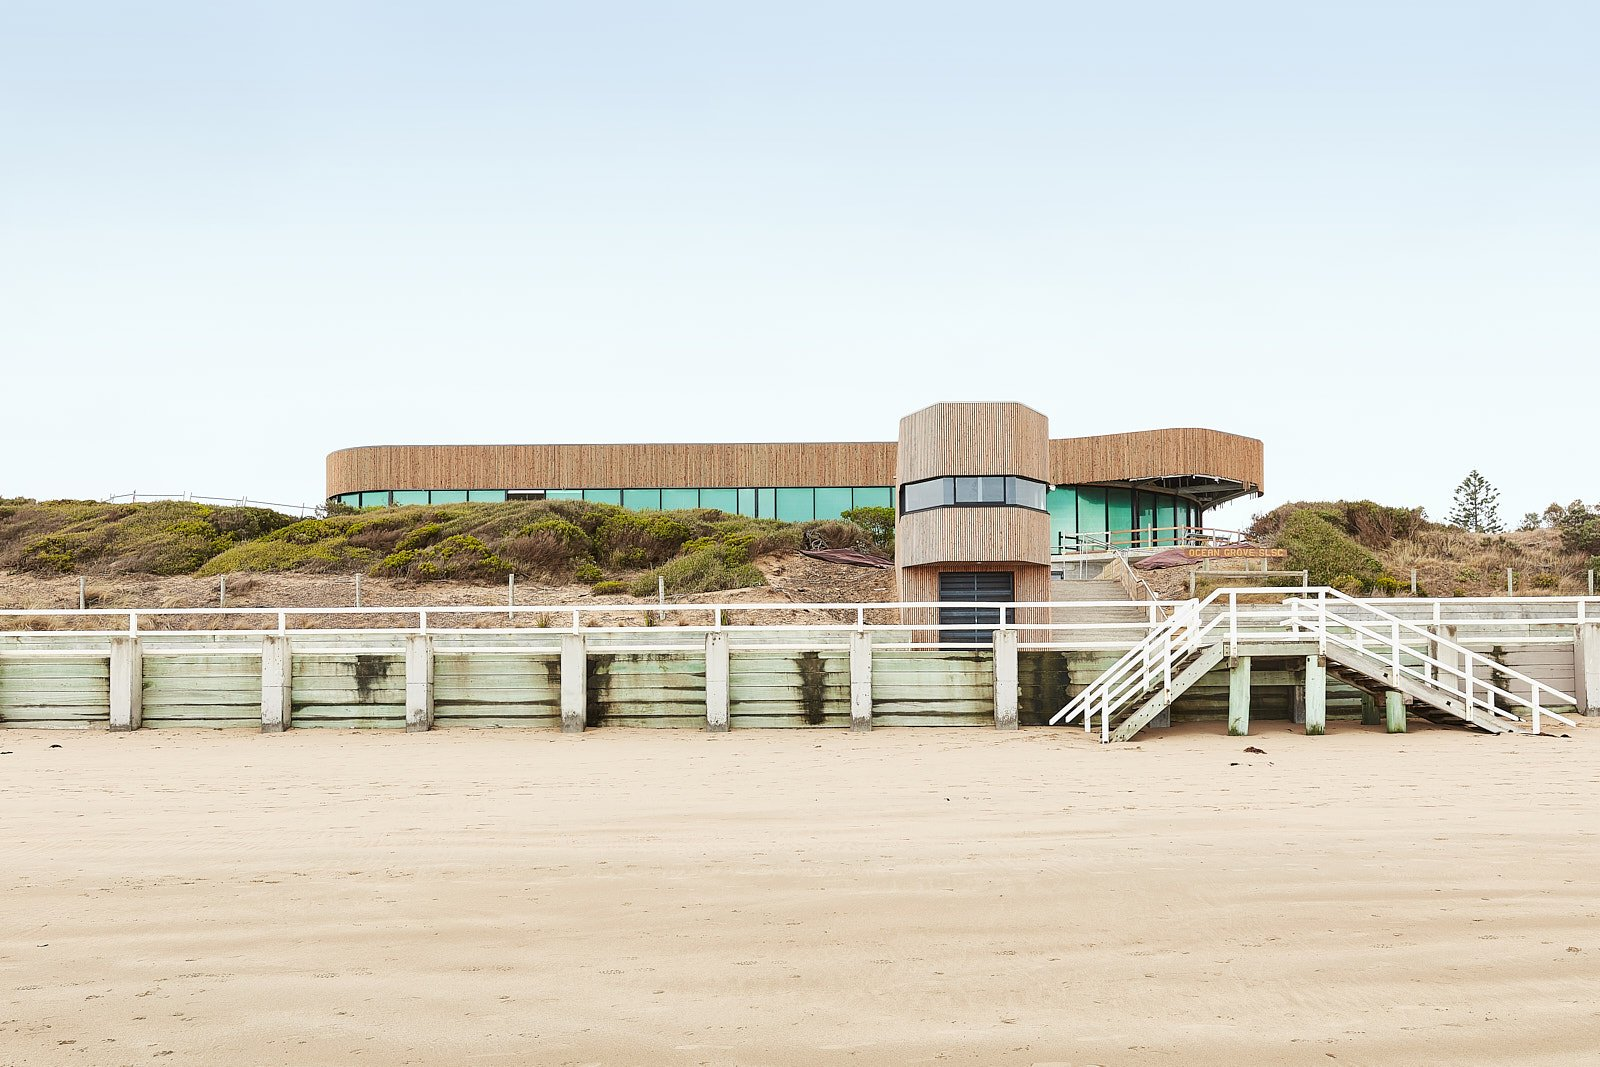 Surf Life Saving Club - Ireland Brown Constructions